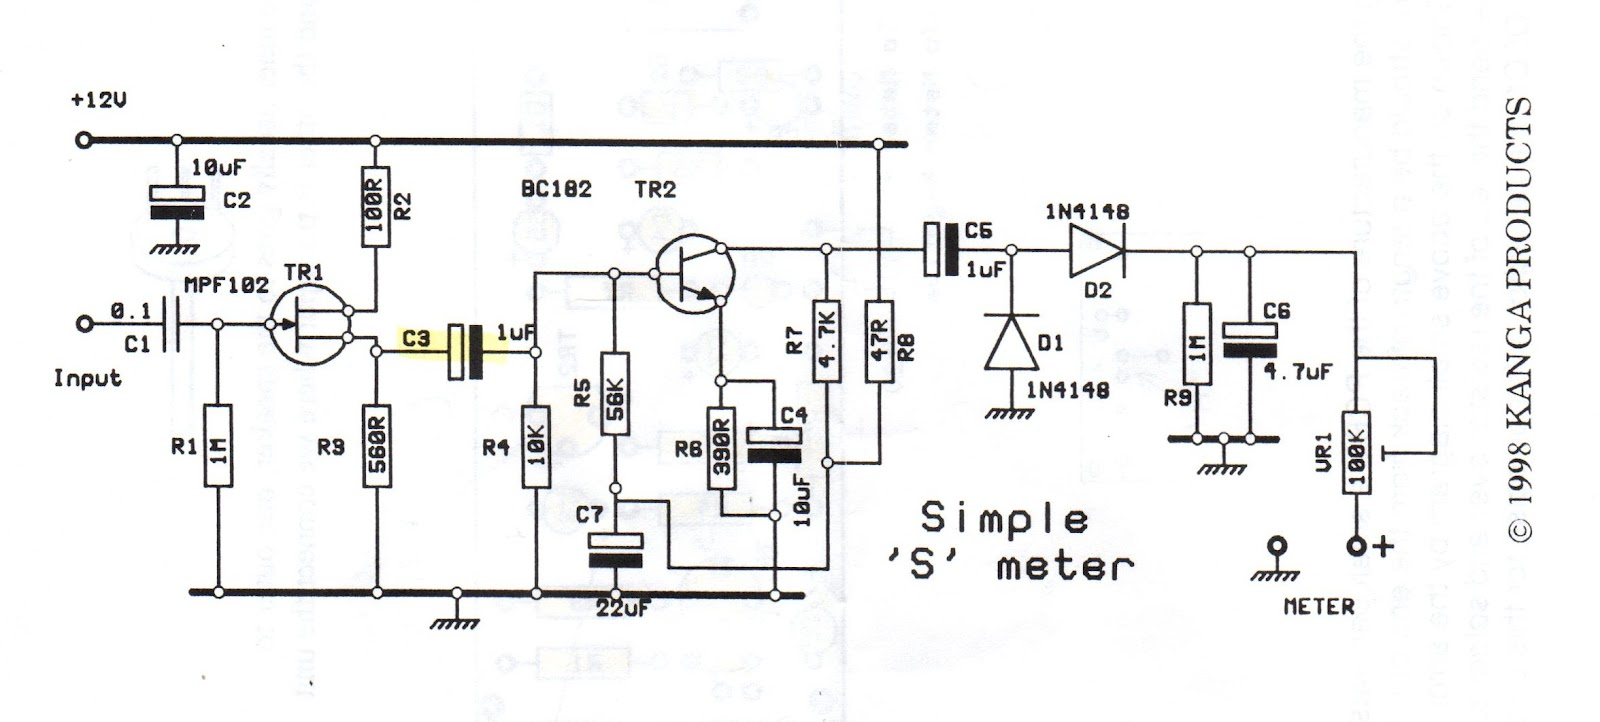 S Meter Circuit Diagram Wiring Library 10h2 To 2mh2 Frequency Counter